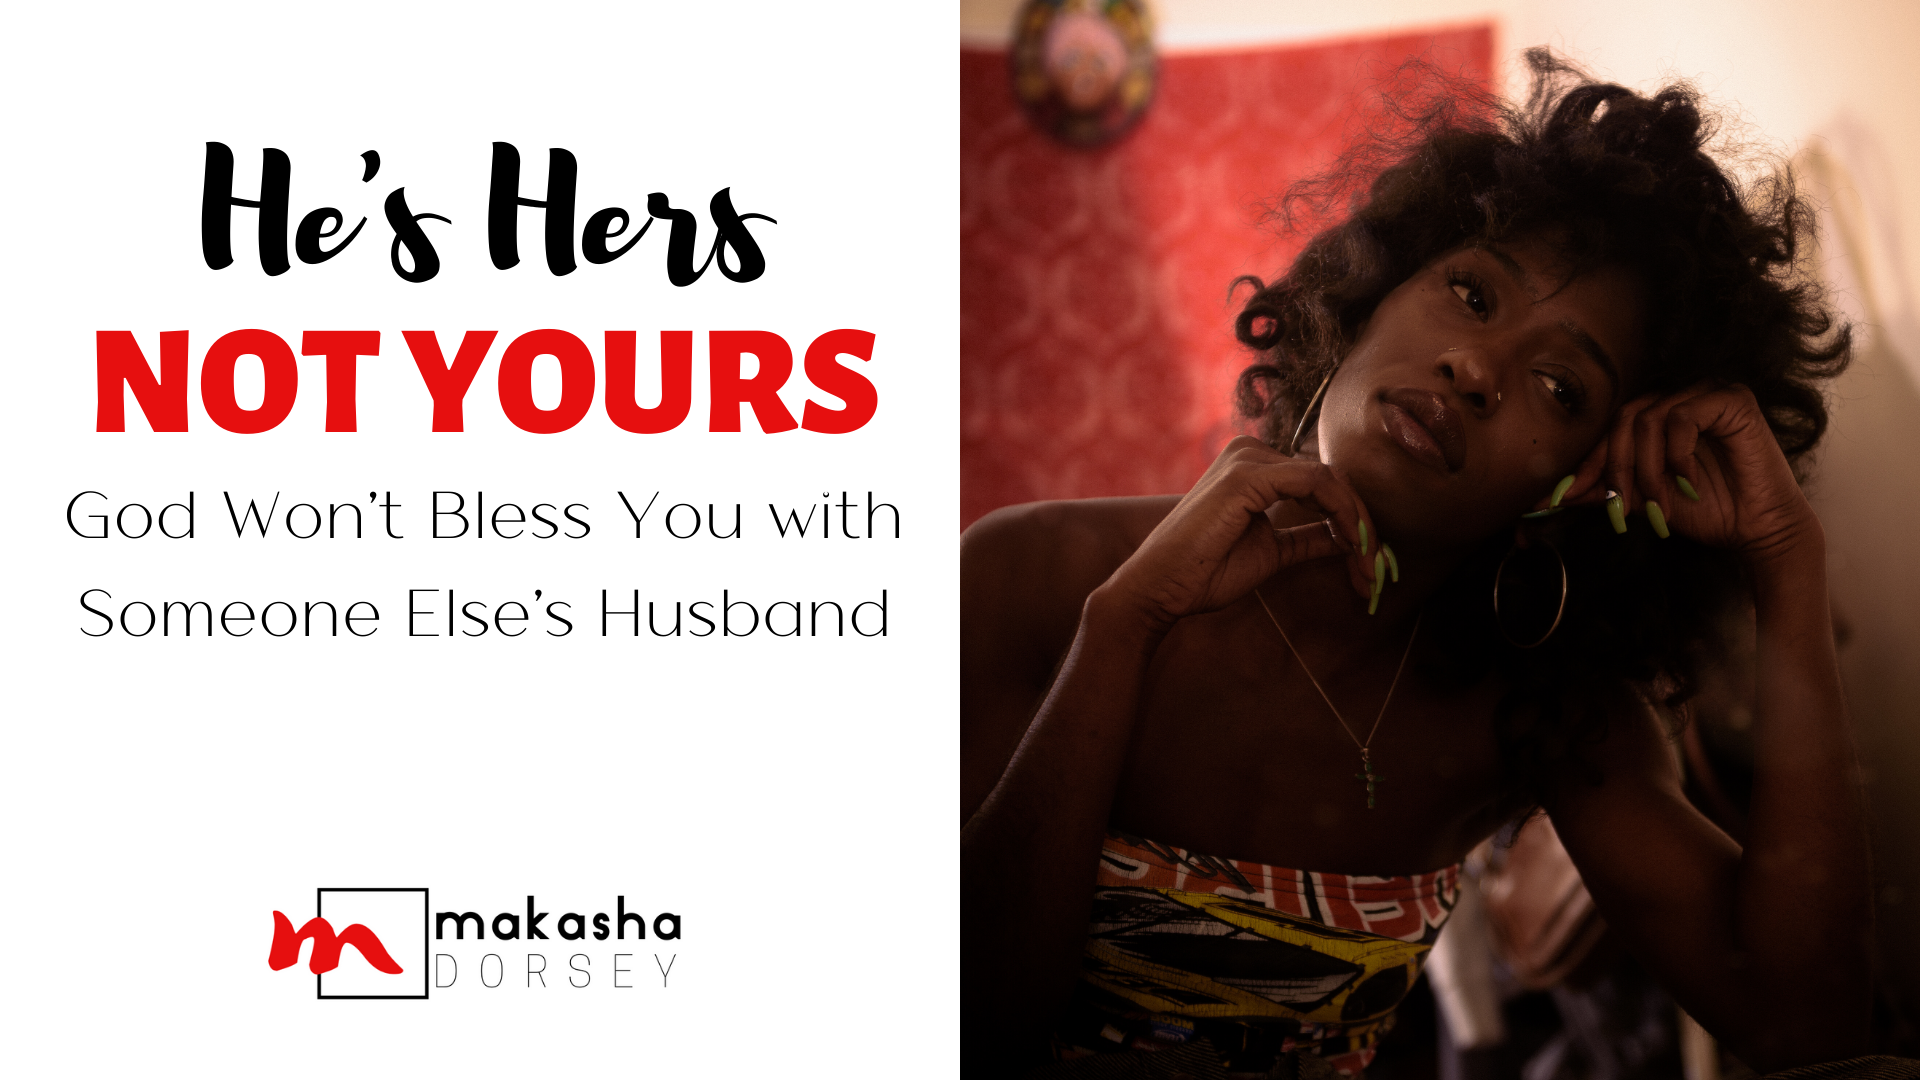 Someone Else's Husband | He's Hers, Not Yours